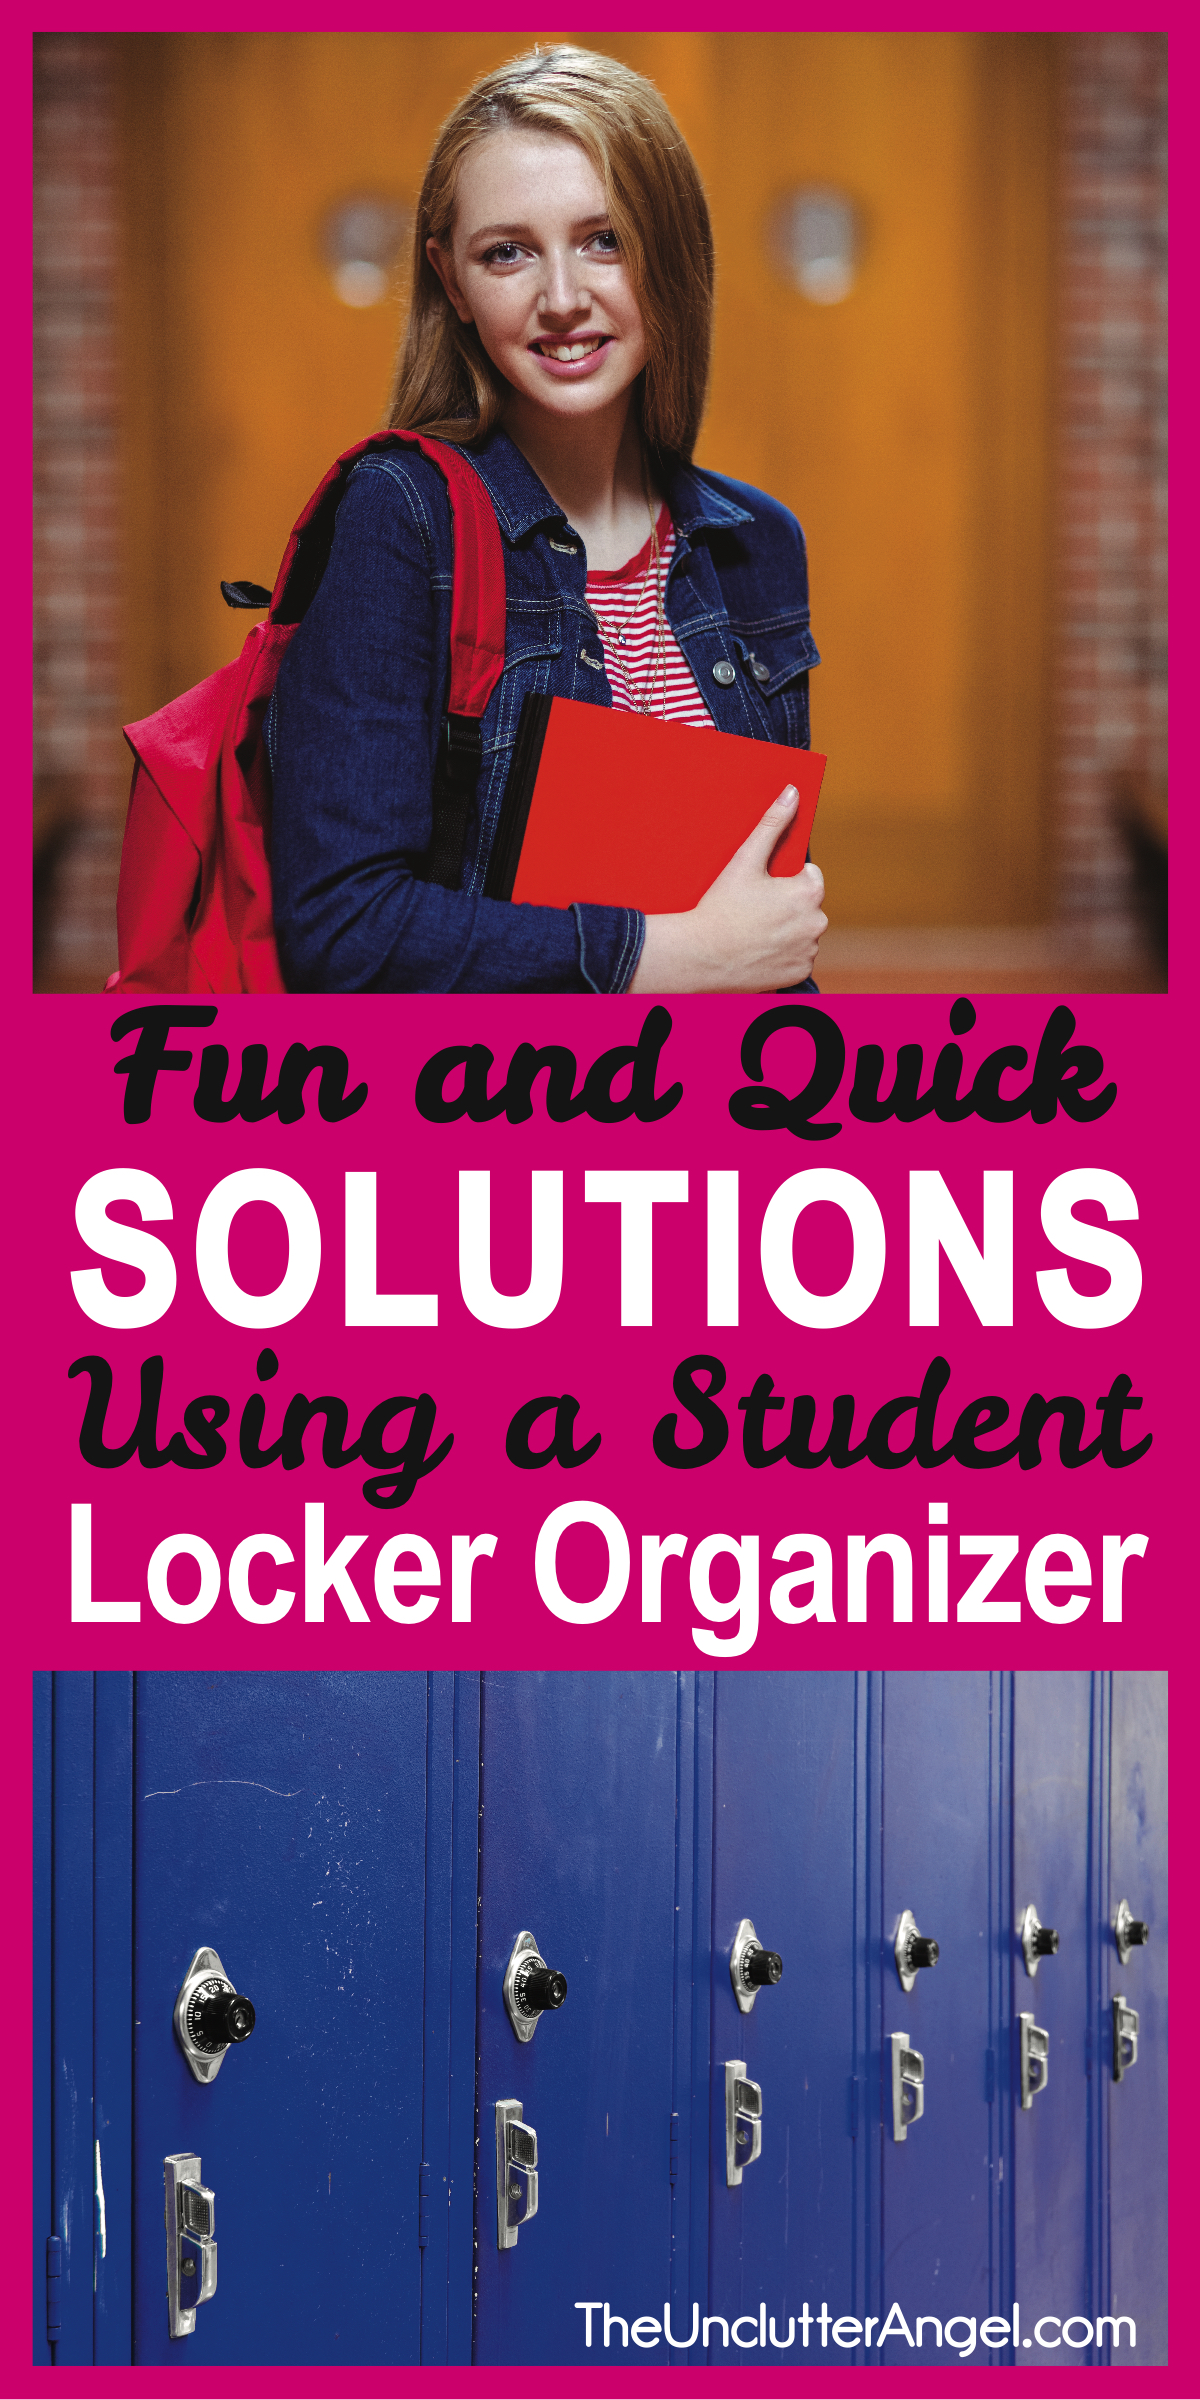 Fun & quick solutions using a student locker organizer! Whether you are a neat or messy, there are ways to make your locker successful and stress free!